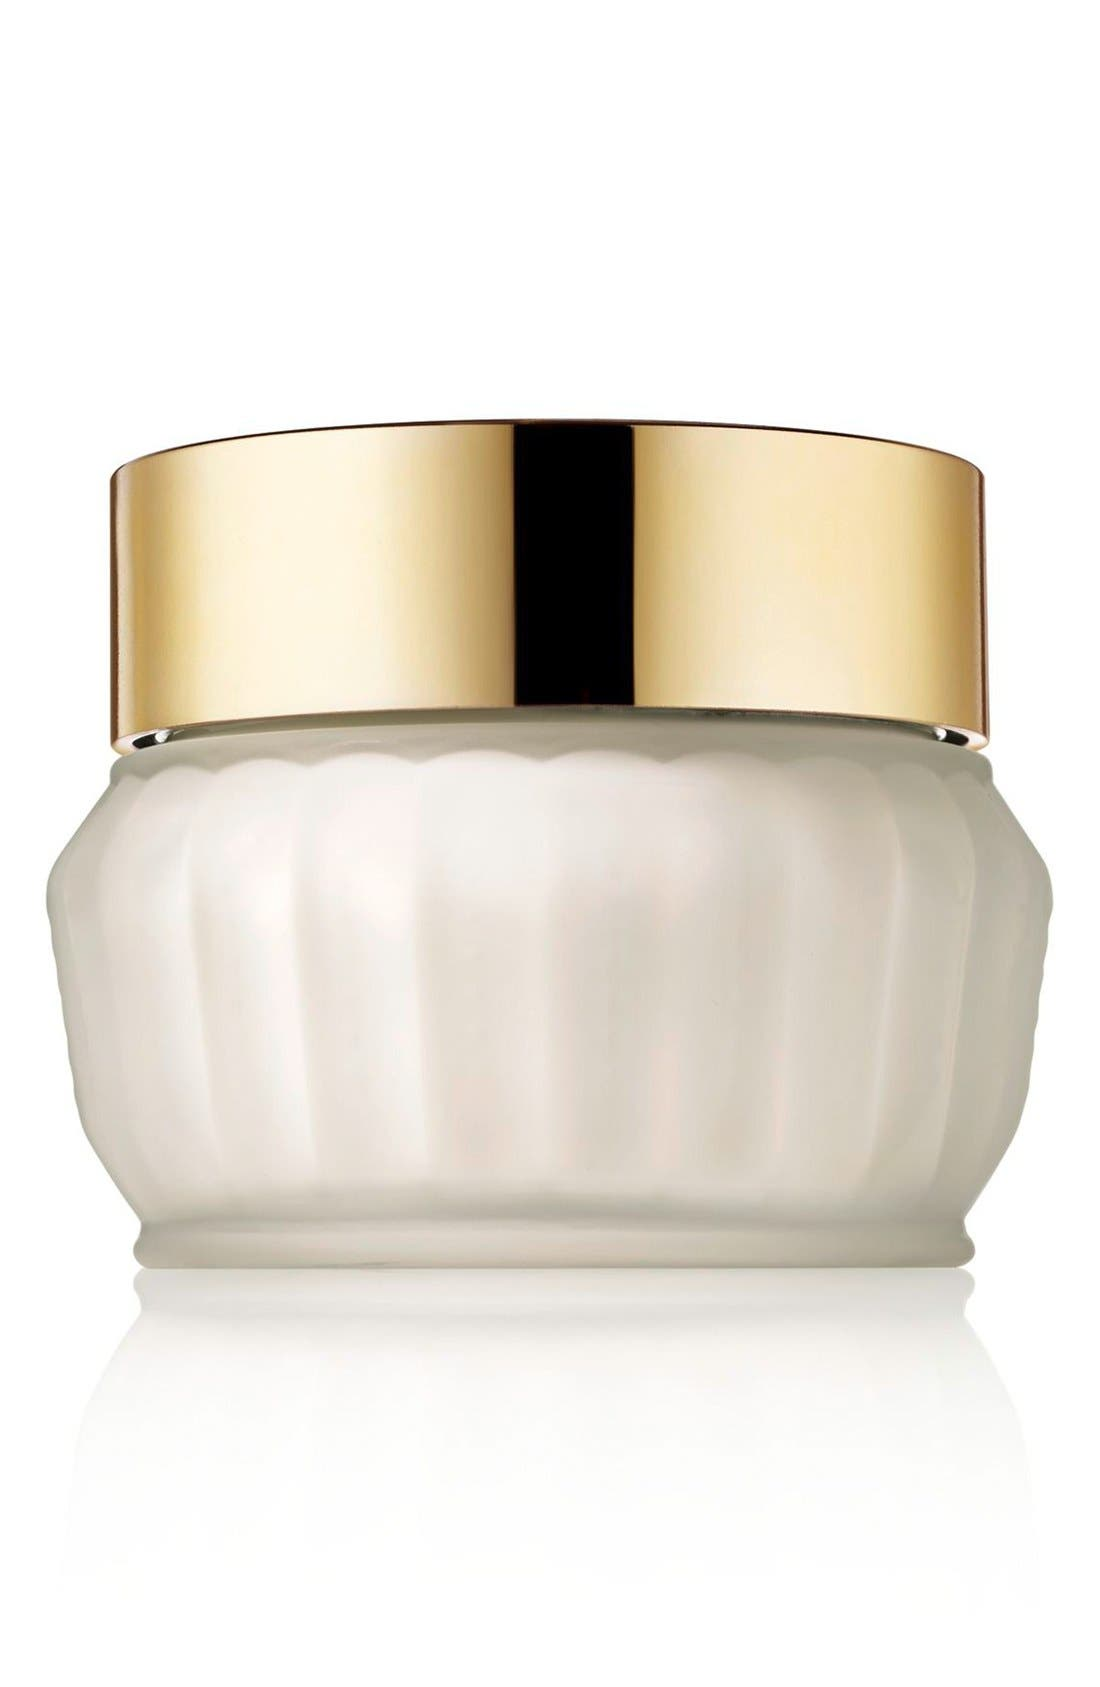 Estée Lauder Youth-Dew Perfumed Body Creme